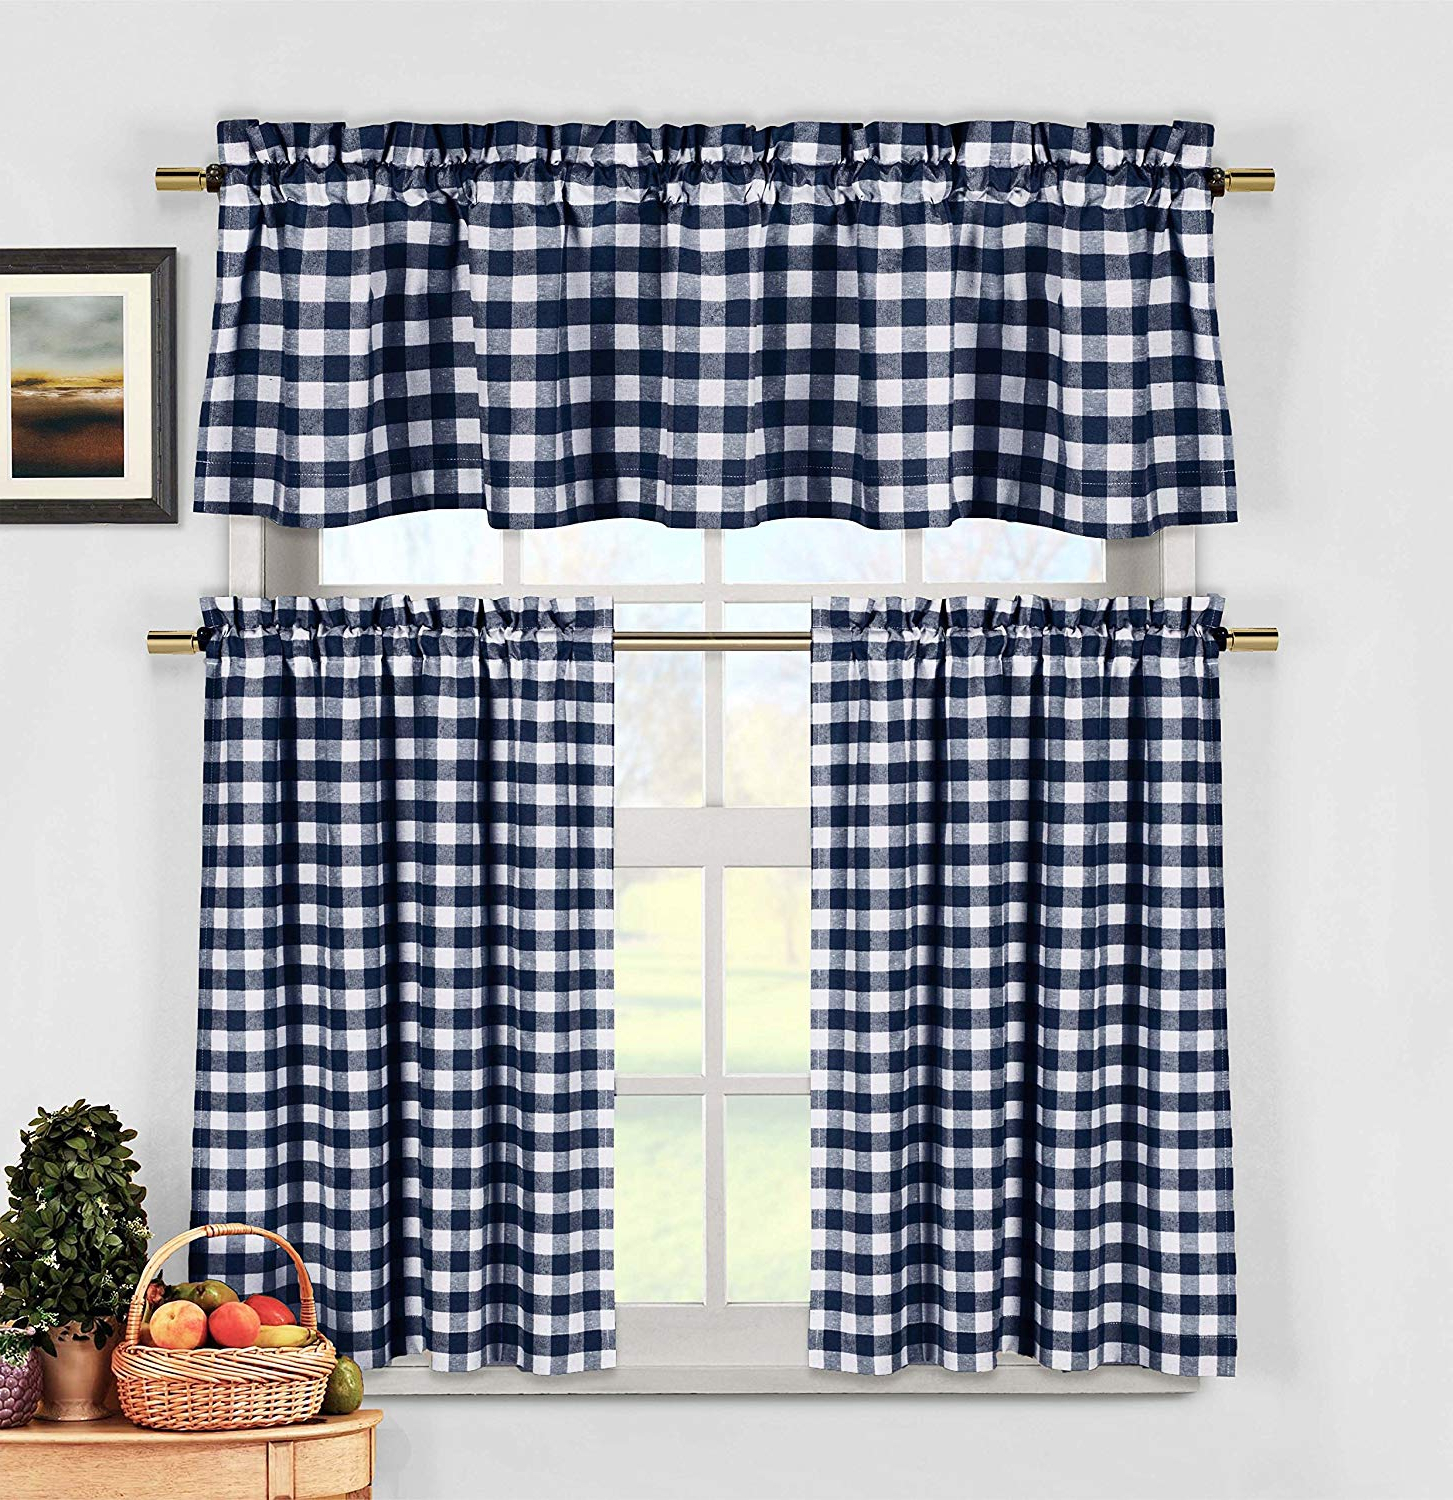 Most Recently Released Navy Blue 3 Piece Gingham Check Kitchen Window Curtain Set: Plaid, Cotton  Rich, 1 Valance, 2 Tier Panels (Matching 3 Piece Window Curtain Set) Within Classic Navy Cotton Blend Buffalo Check Kitchen Curtain Sets (Gallery 1 of 20)